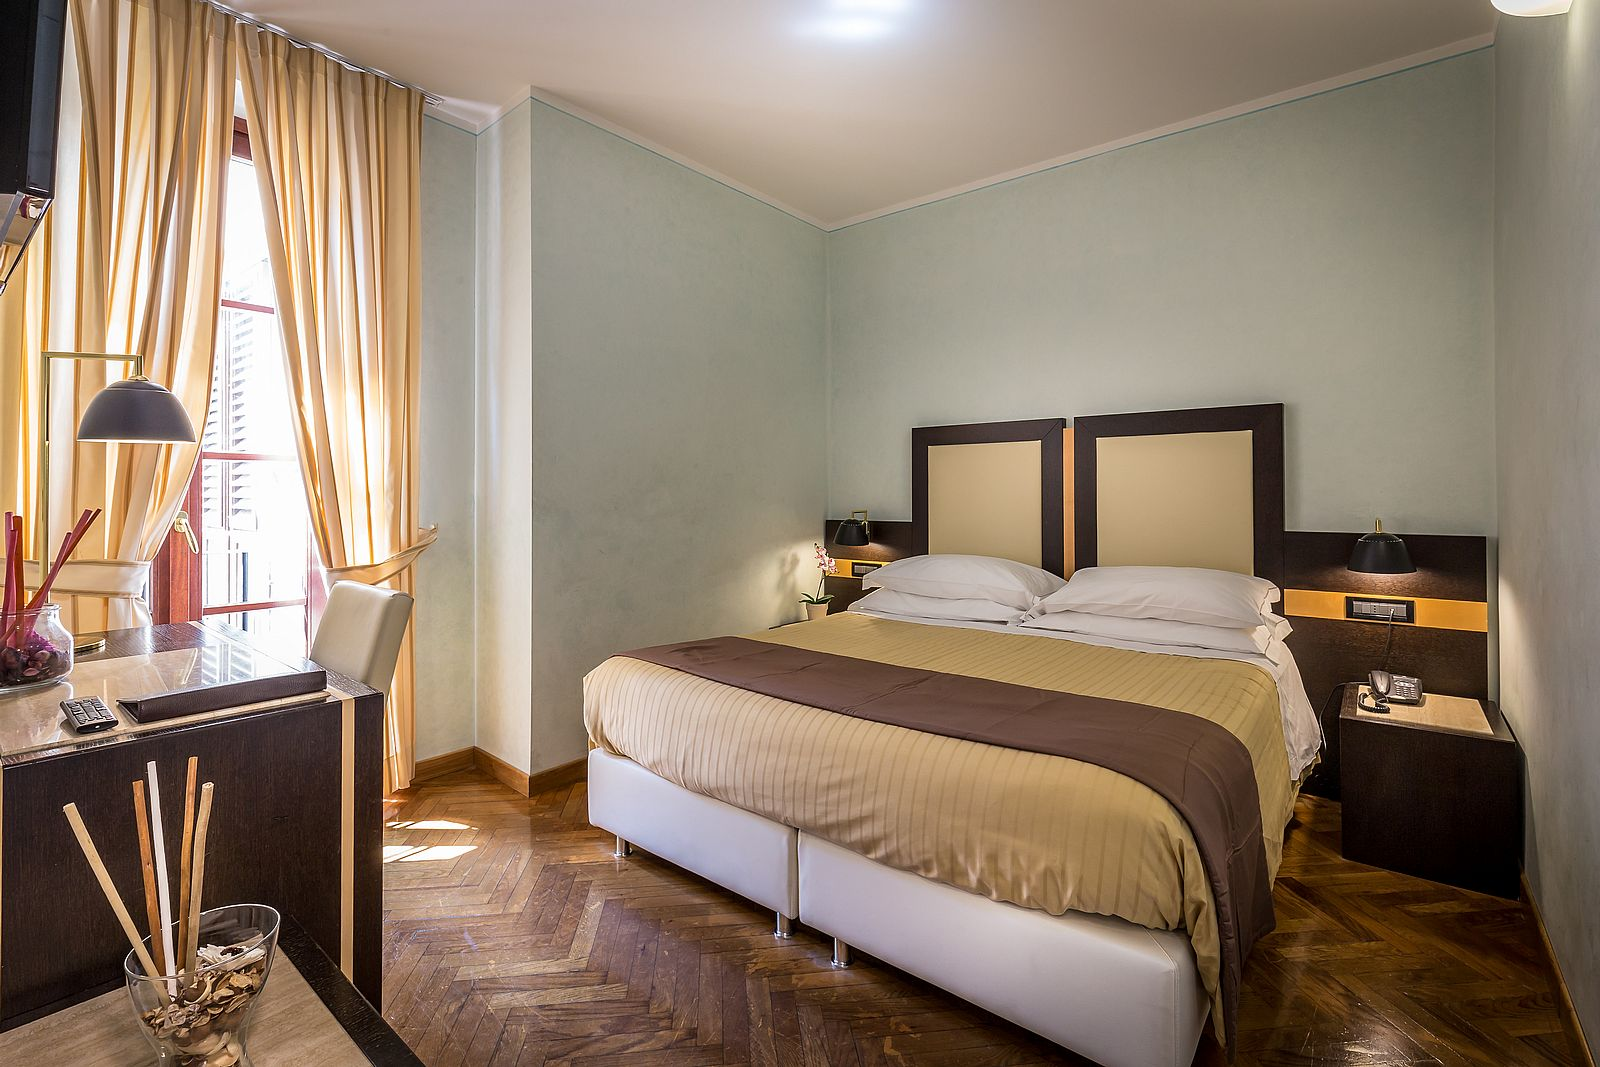 Guest House Soggiorno Monaco Firenze Double And Single Room With View On Florence Hotel Duomo Florence